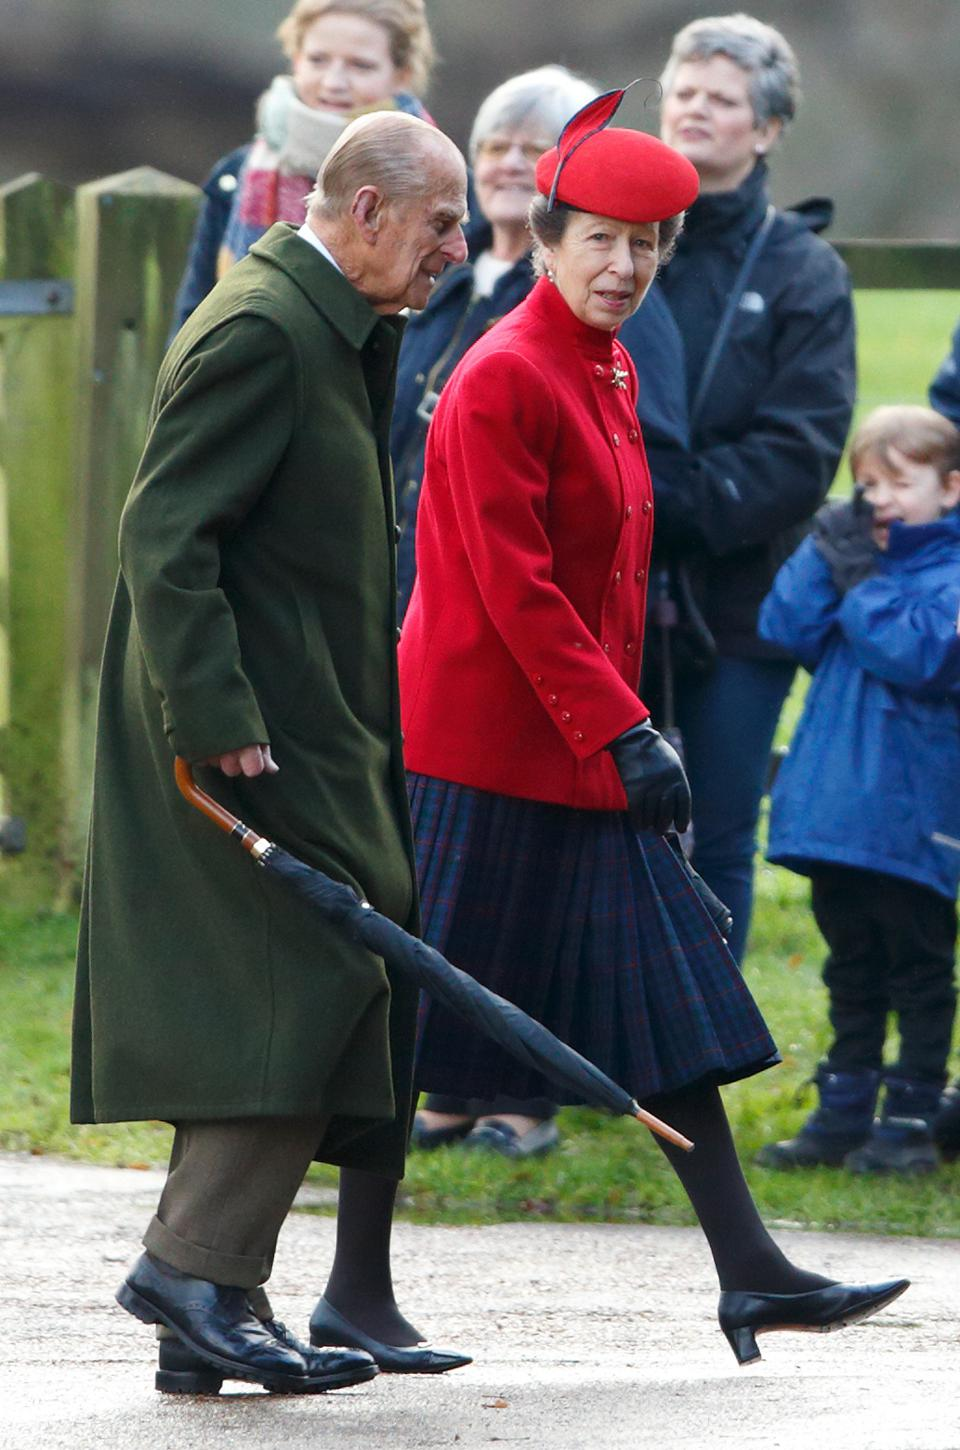 Prince Philip Attends Sunday Service At Sandringham 2015